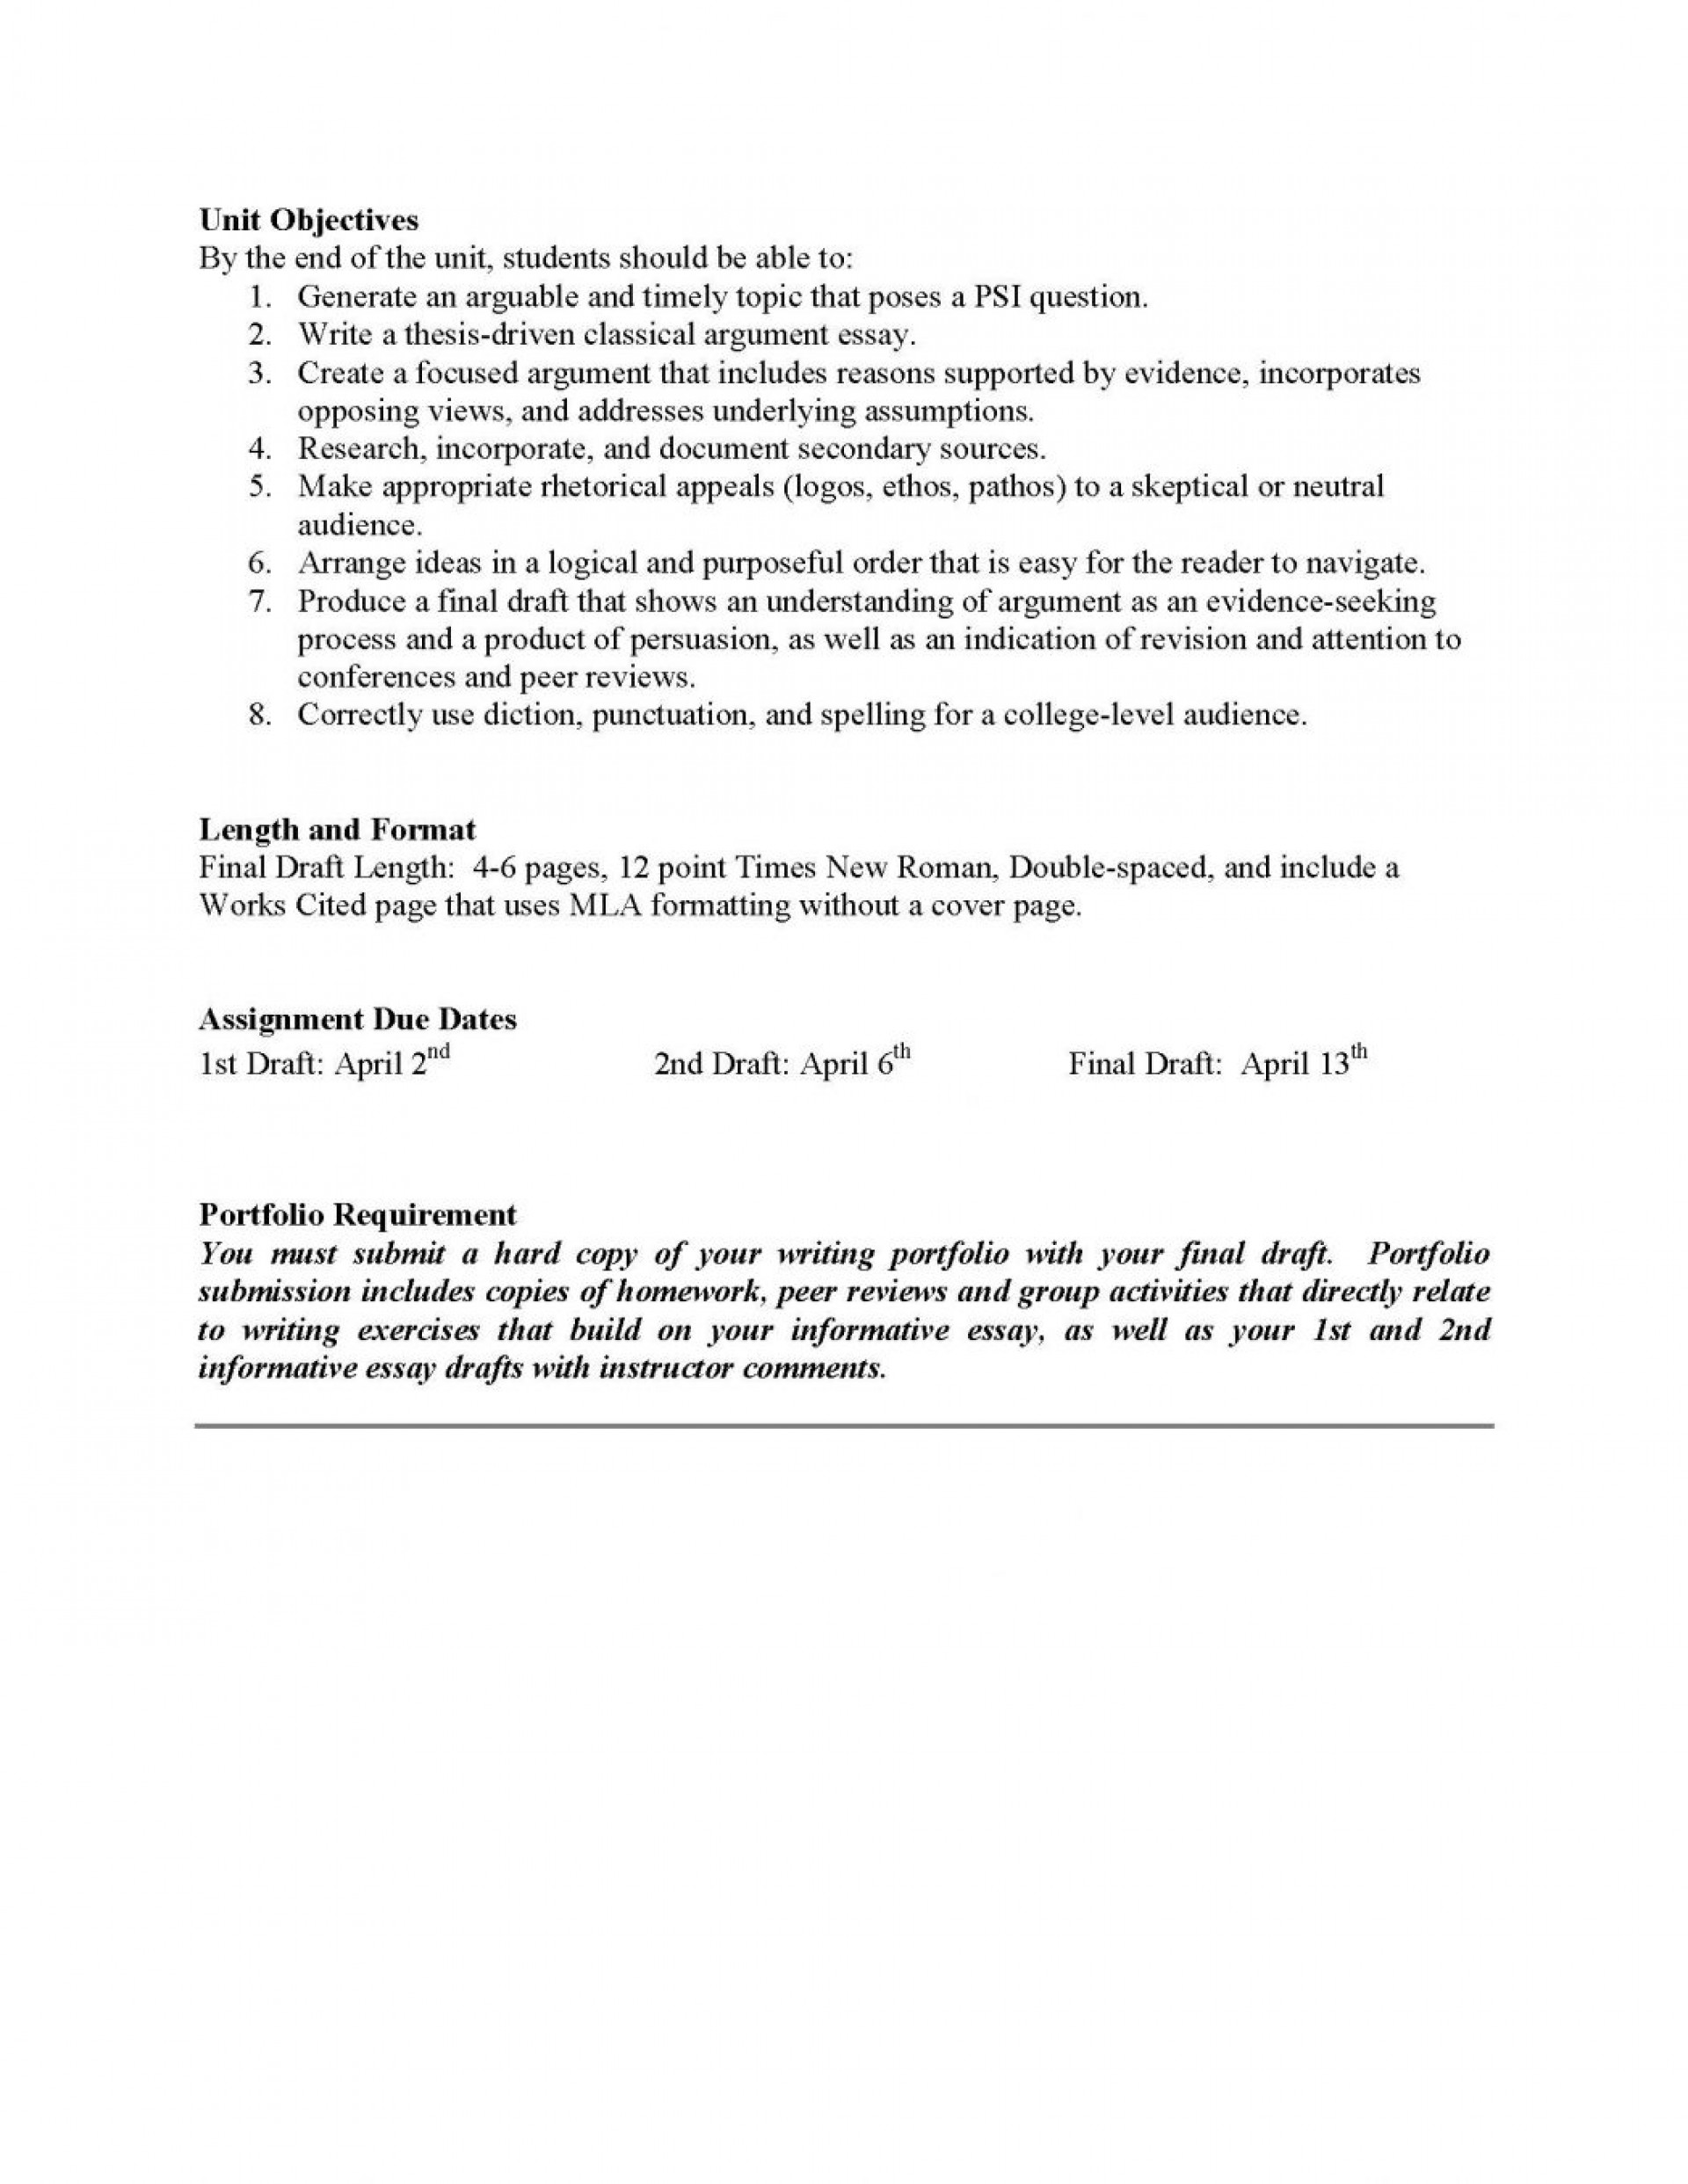 001 Homework Essay No Persuasive On Stem Cell Research Weekends Classical Argument Unit Assignment P Policy 1048x1356 Unusual Conclusion Help Writing Writer 1920